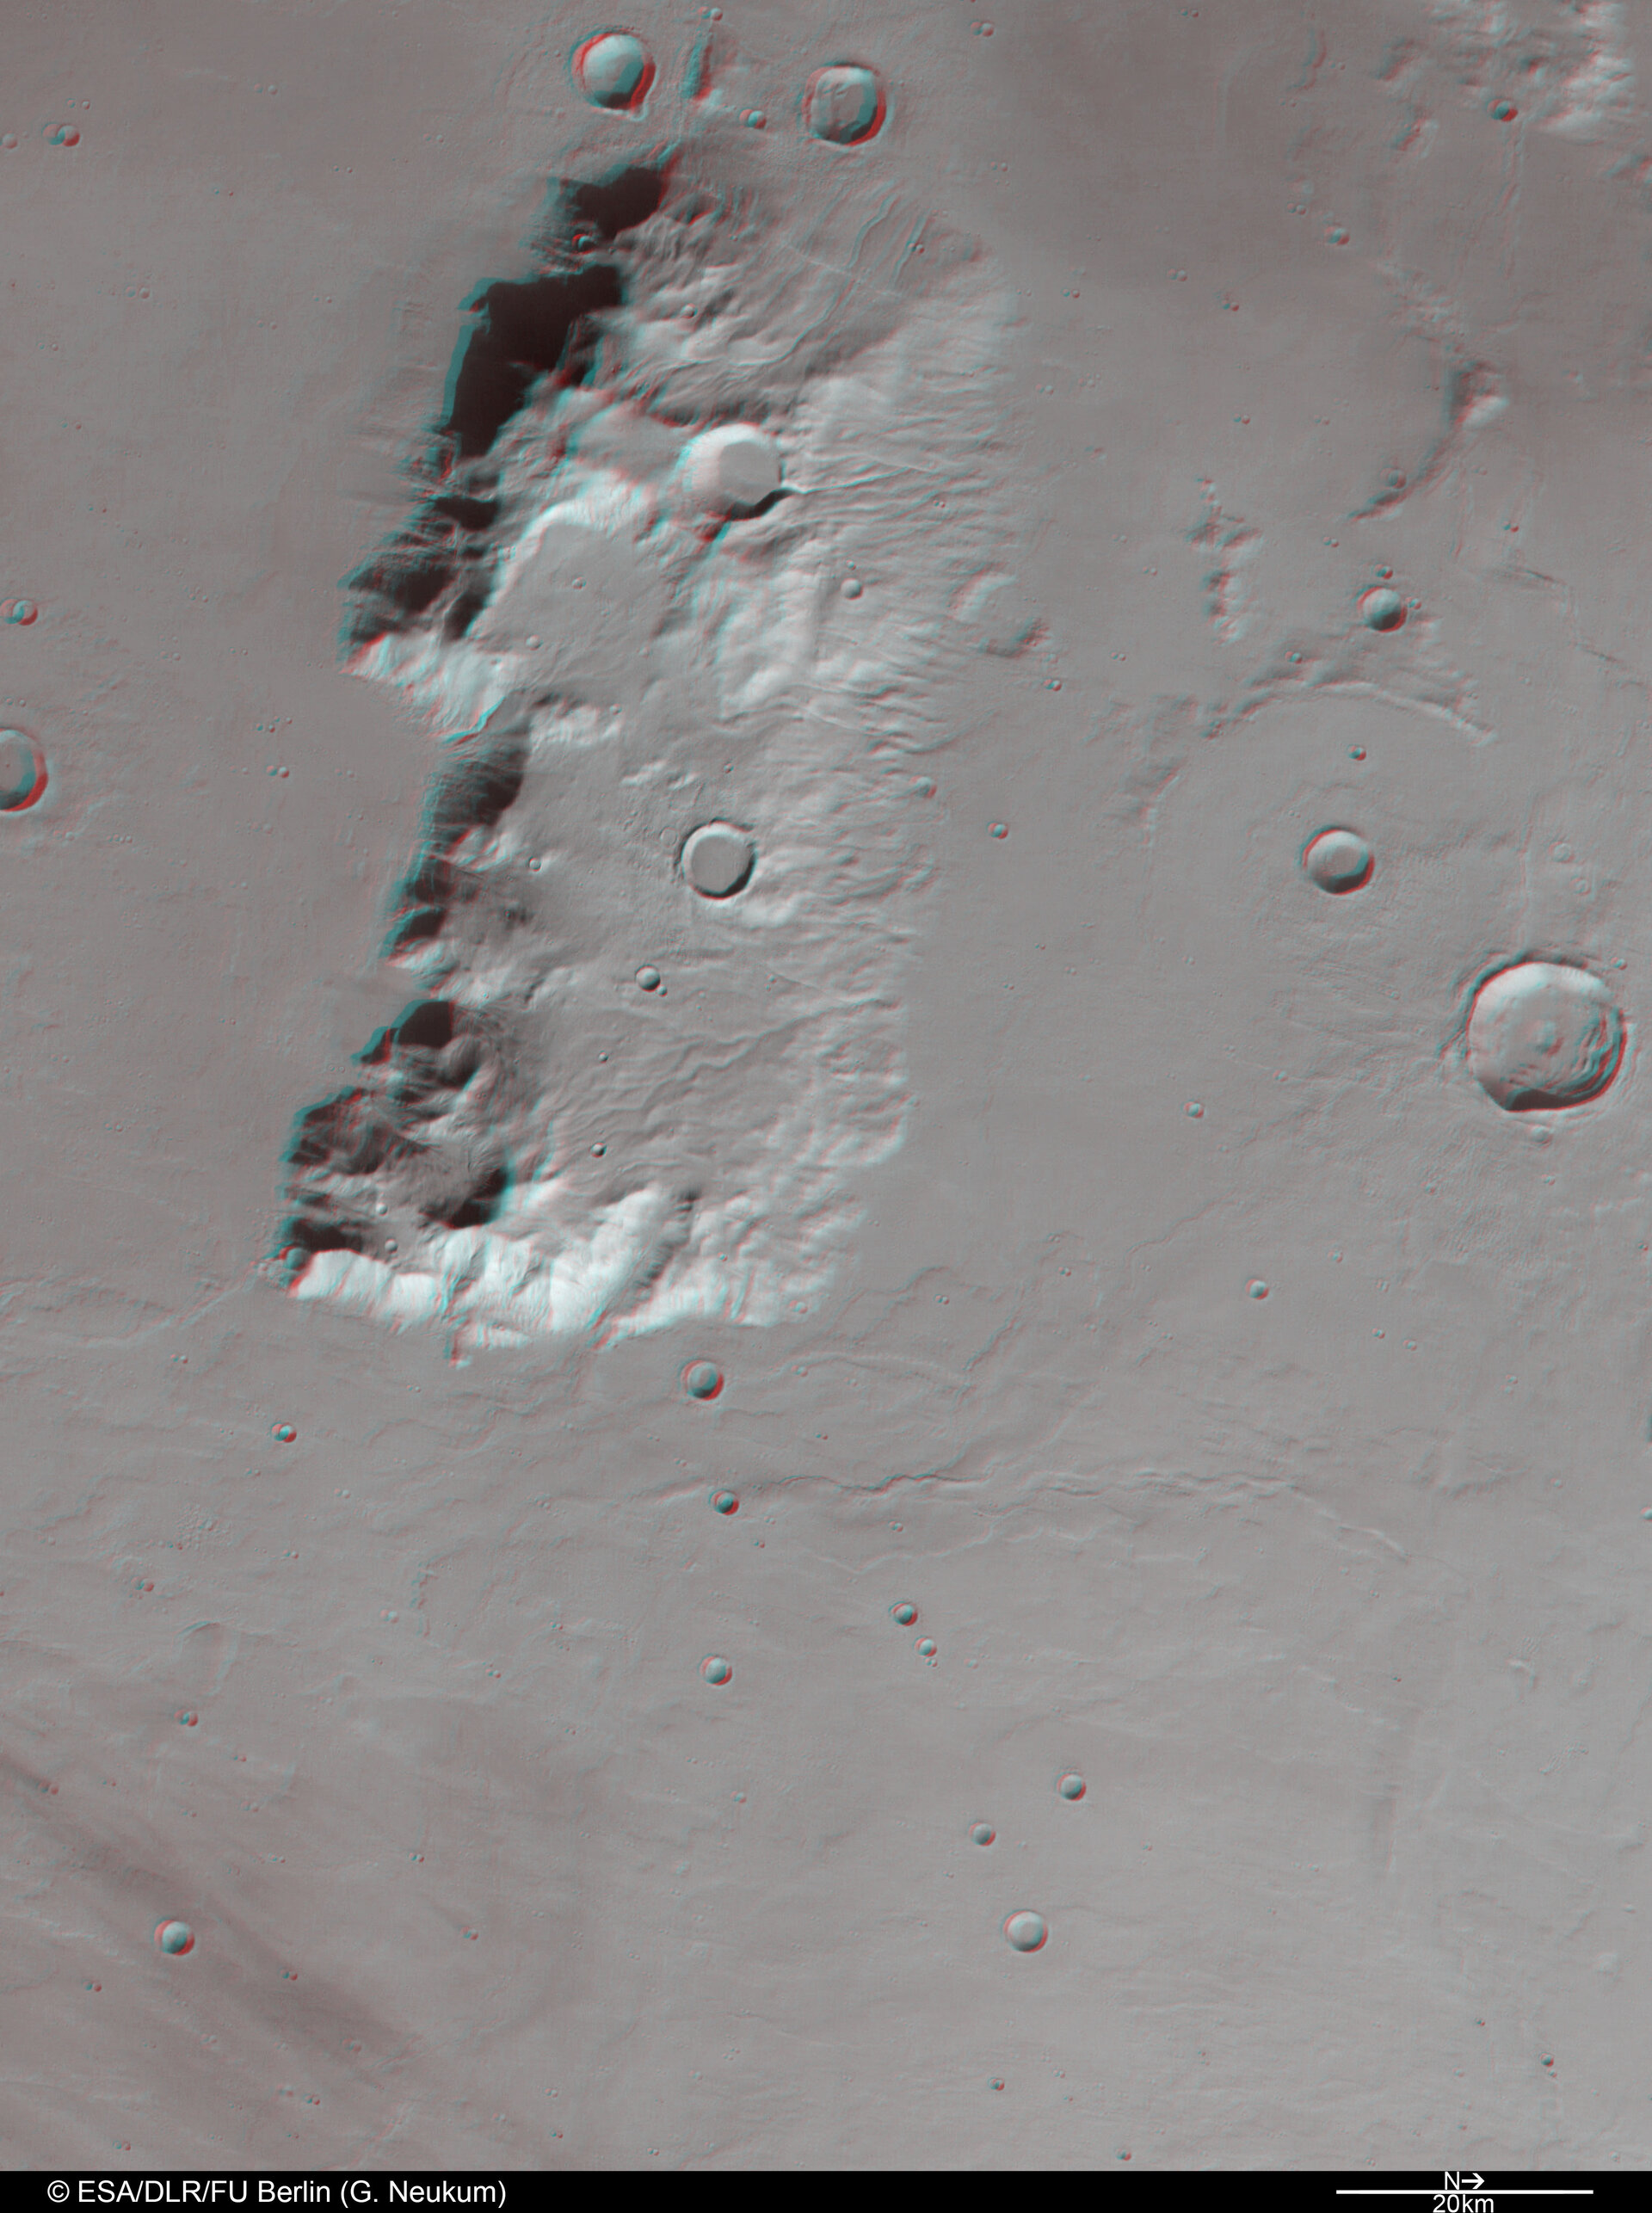 3D anaglyph view of Ausonia Mensa